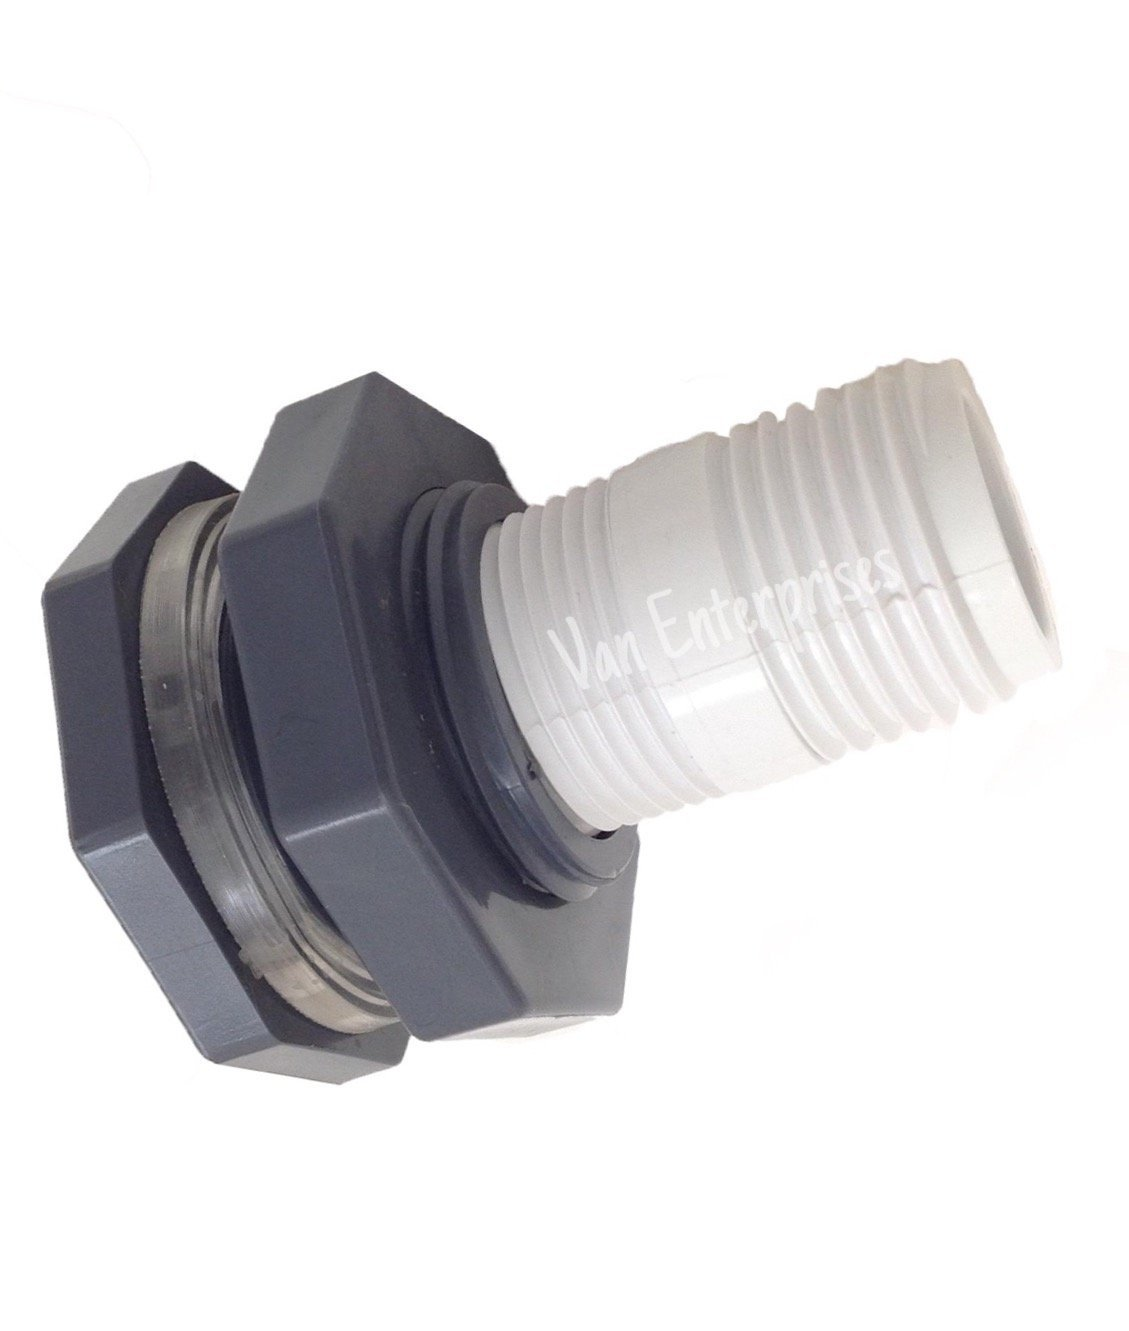 "3/4"" Bulkhead Fitting with Garden Hose Adapter Kit For Rain Barrels, Aquariums, Water Tanks, Tubs, Ponds"